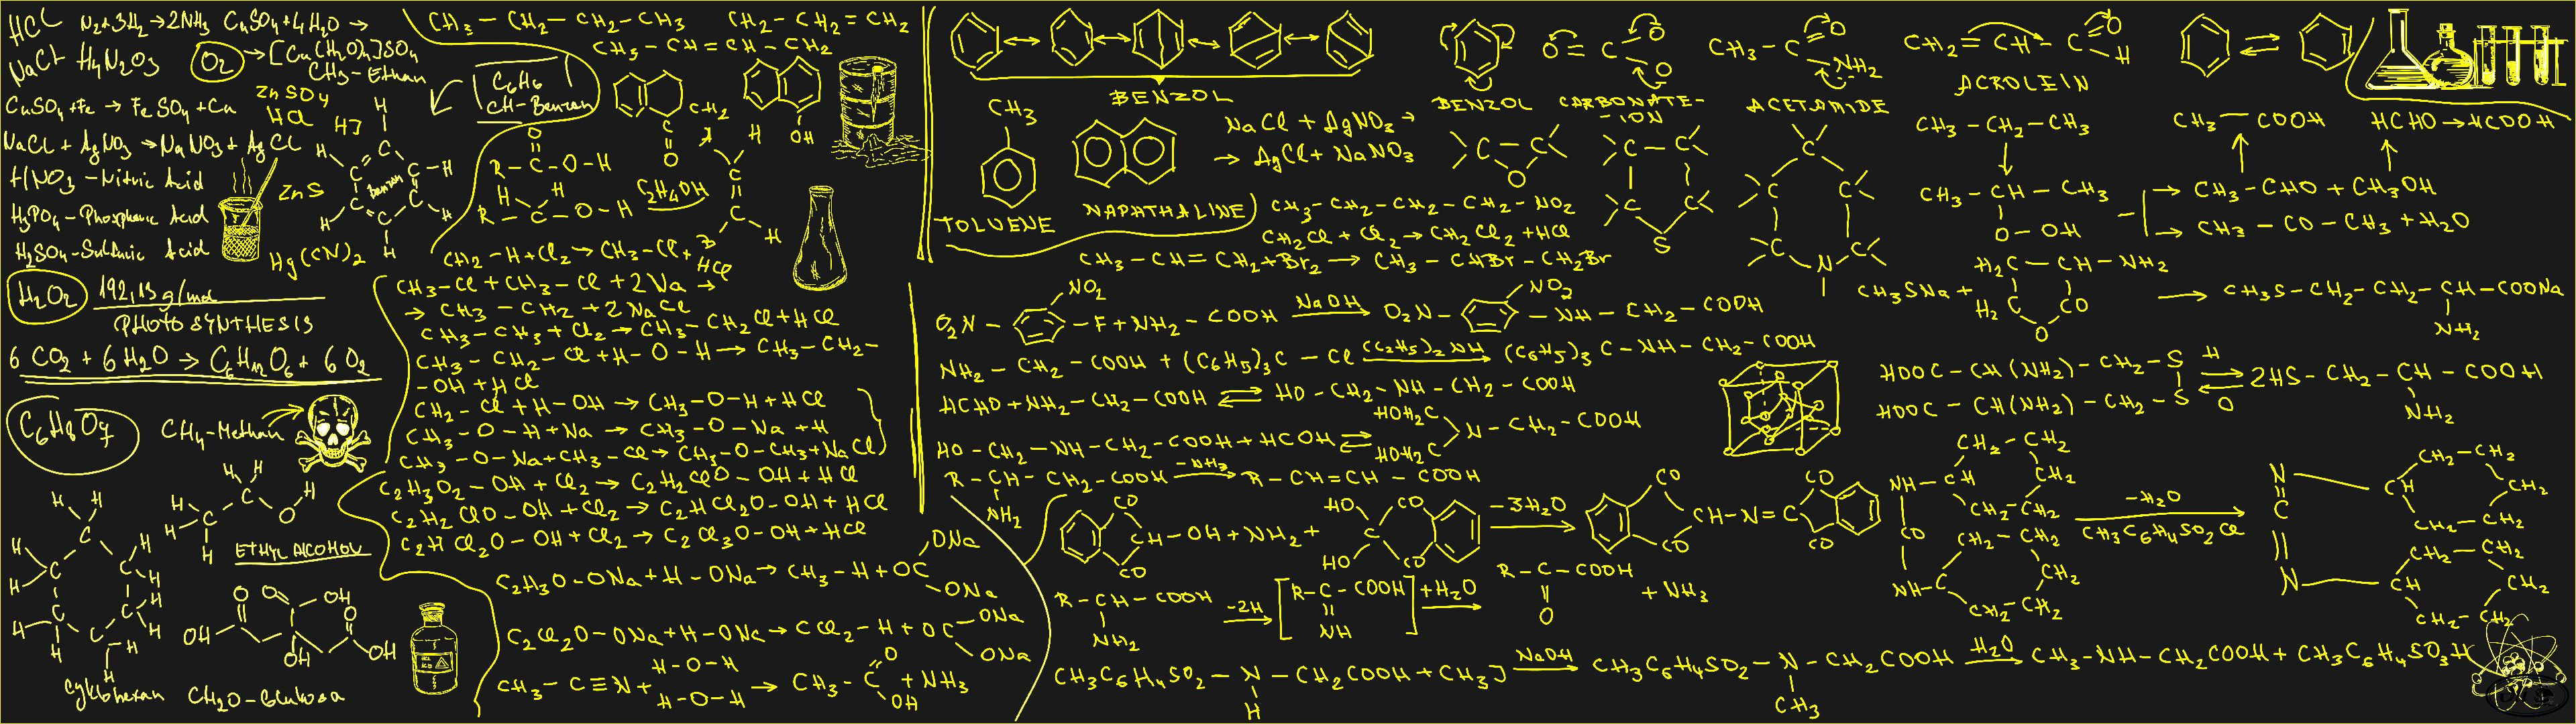 Organic Chemistry Wallpaper Google Search Organic Chemistry